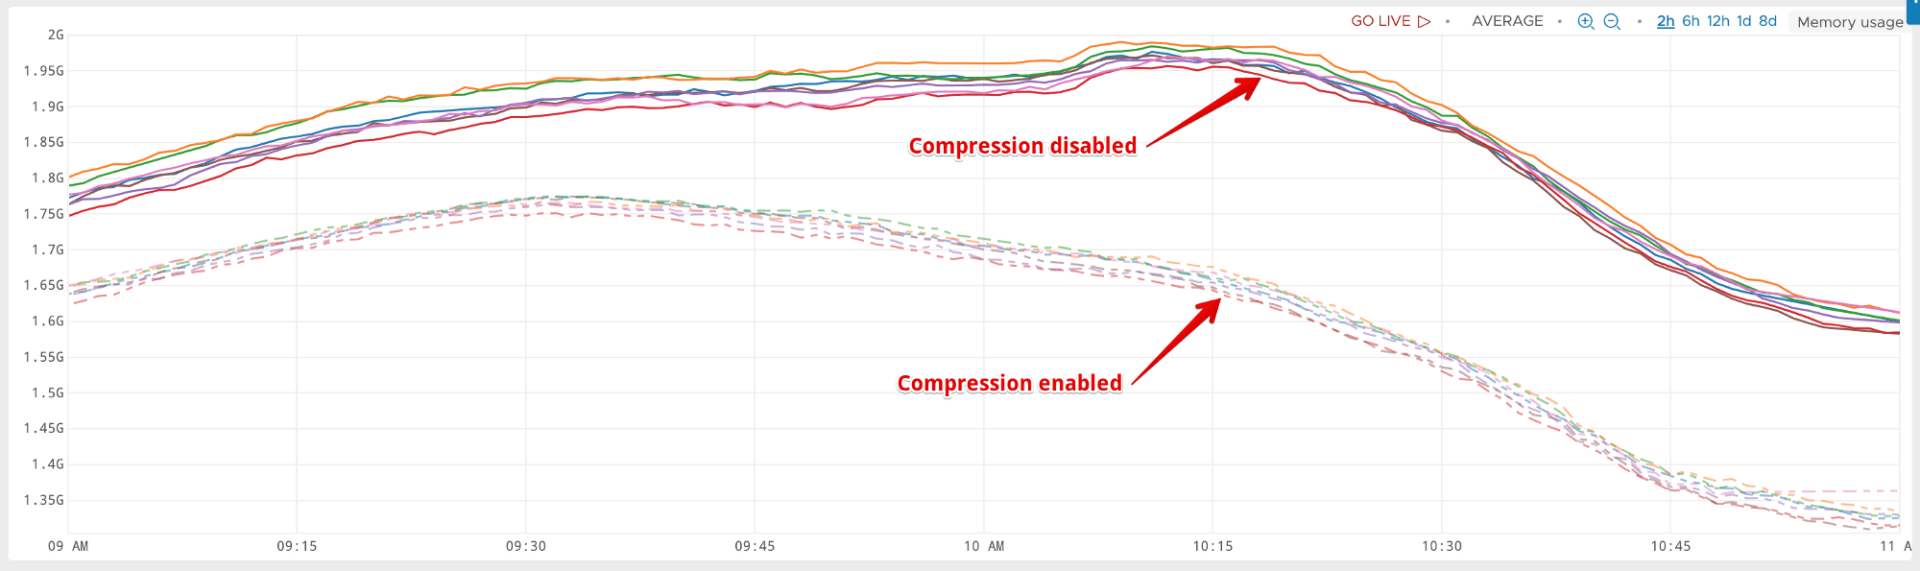 Redis memory usage with compression vs without compression